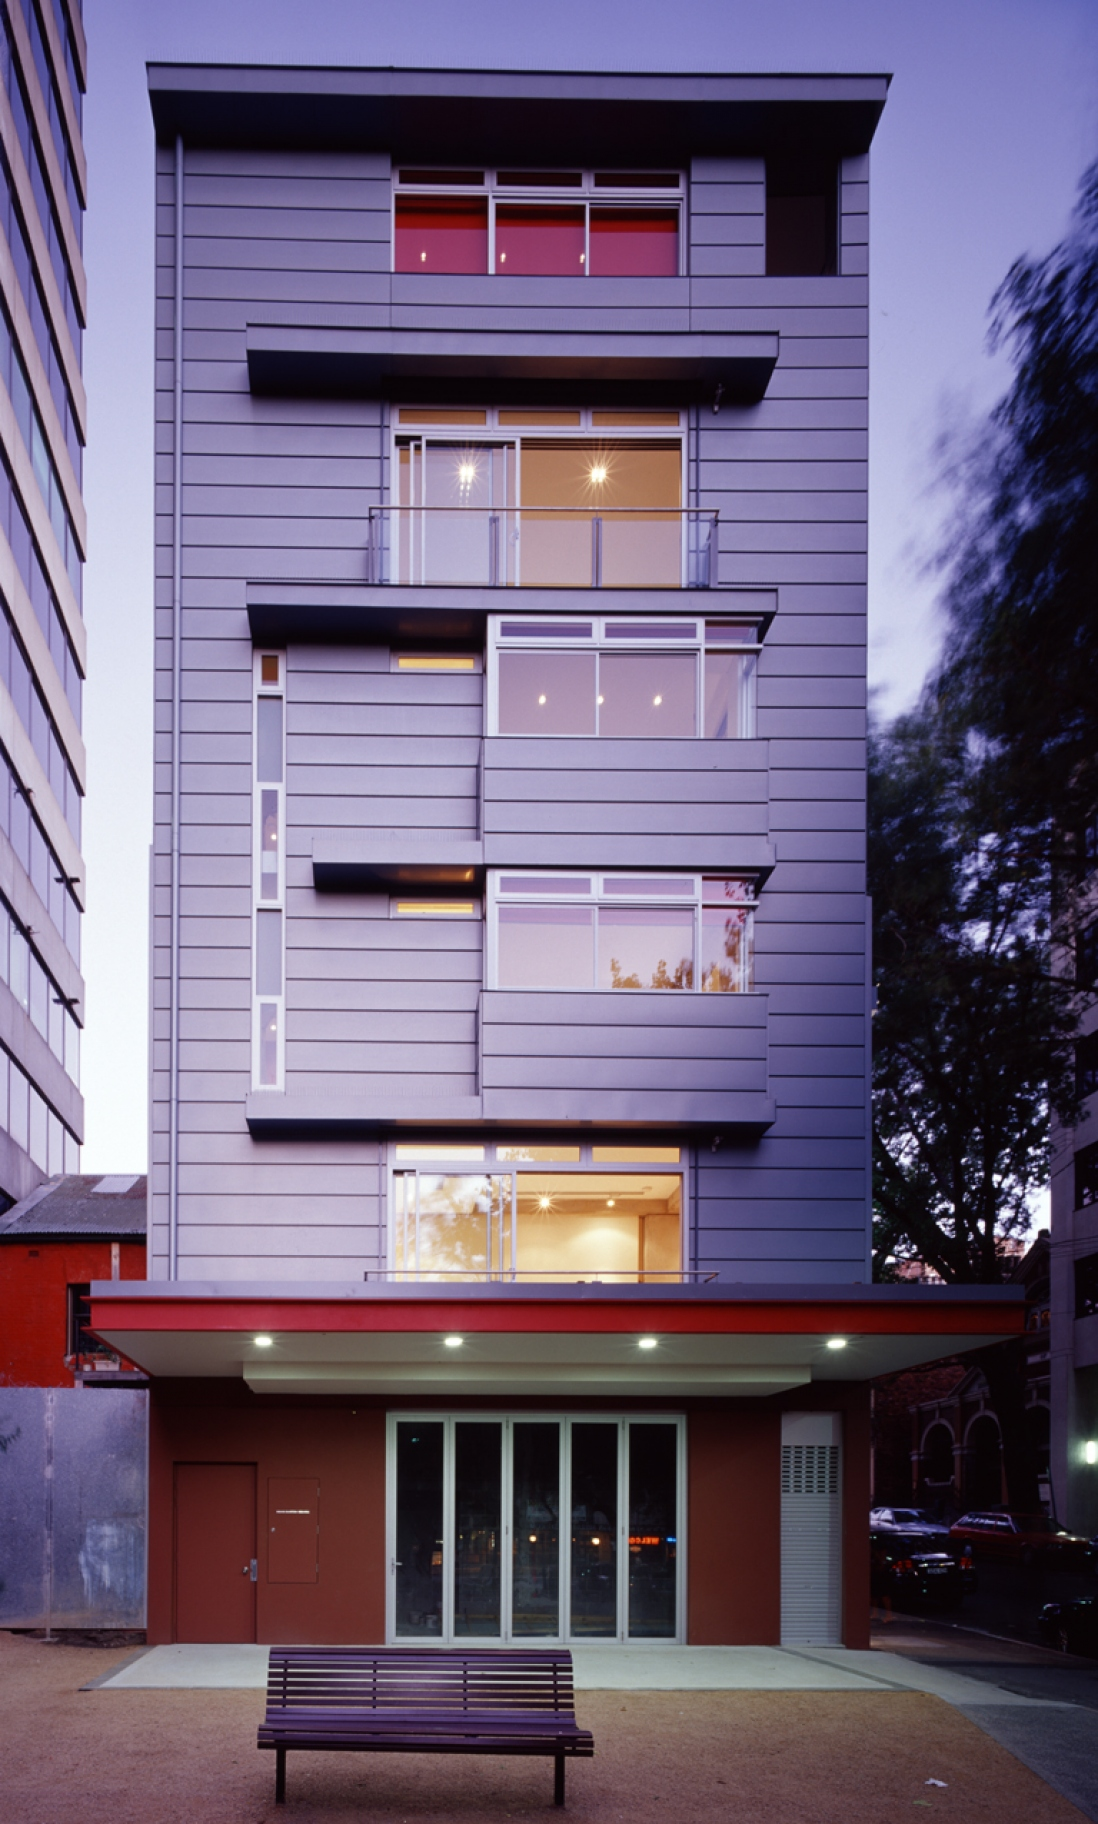 Exterior photograph of Substation No. 175 in Surry Hills featuring building's western facade at dusk.